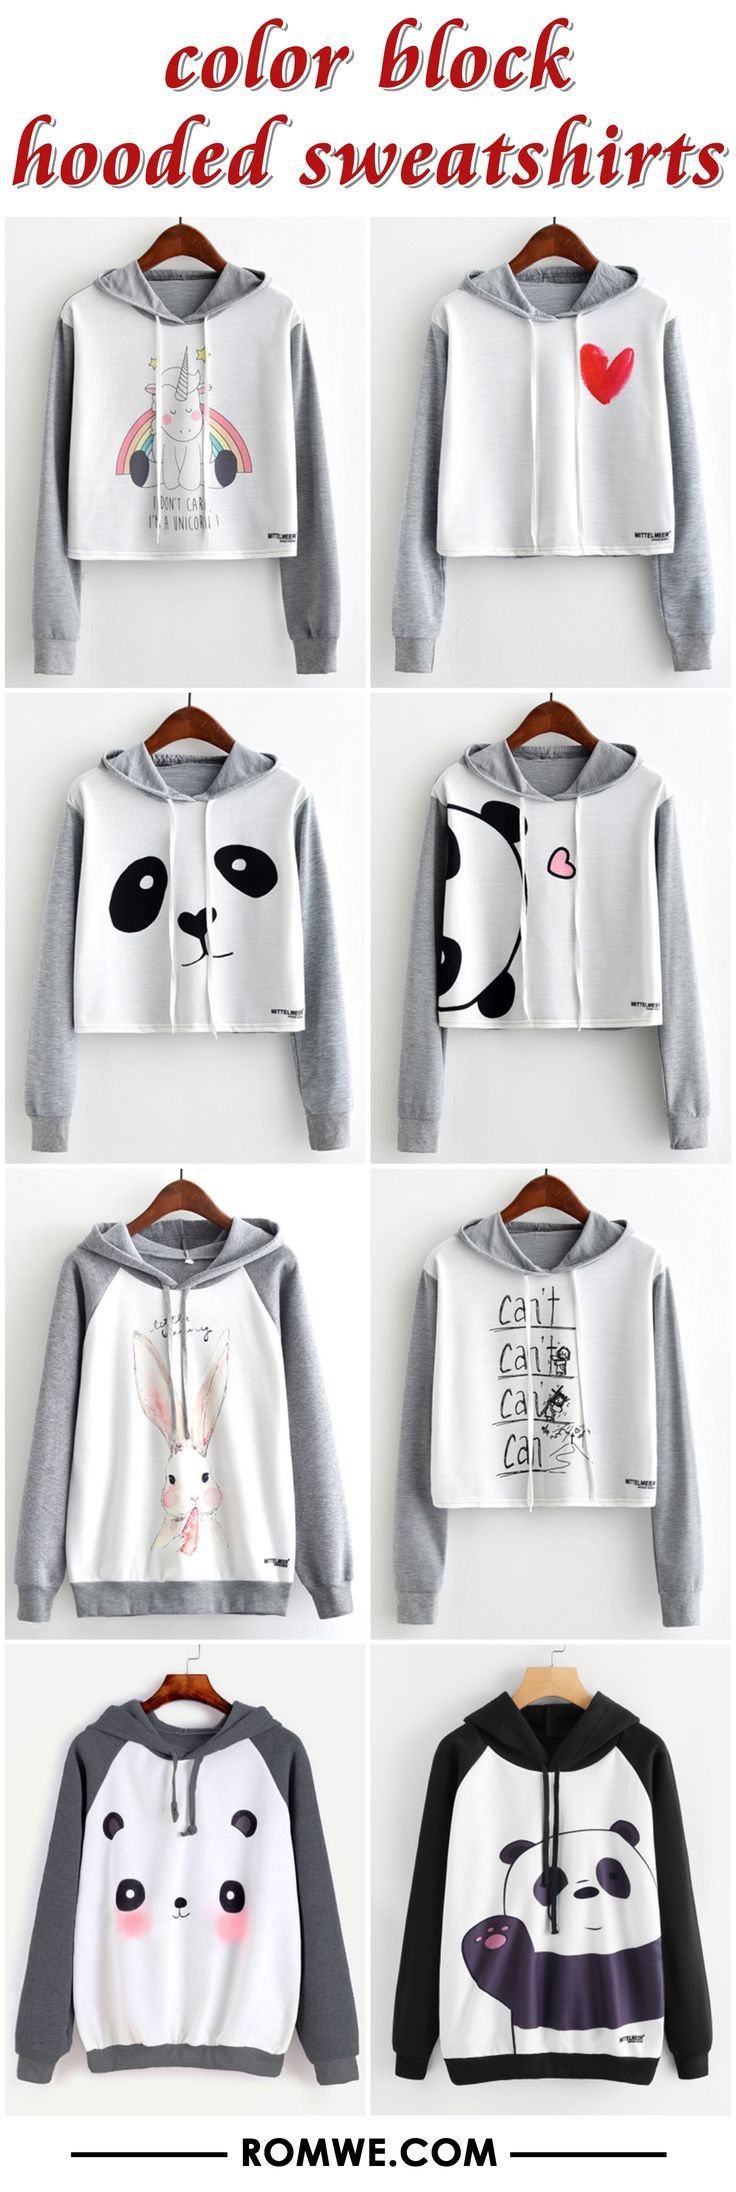 color block hooded sweatshirts from $7.99 - romwe.com